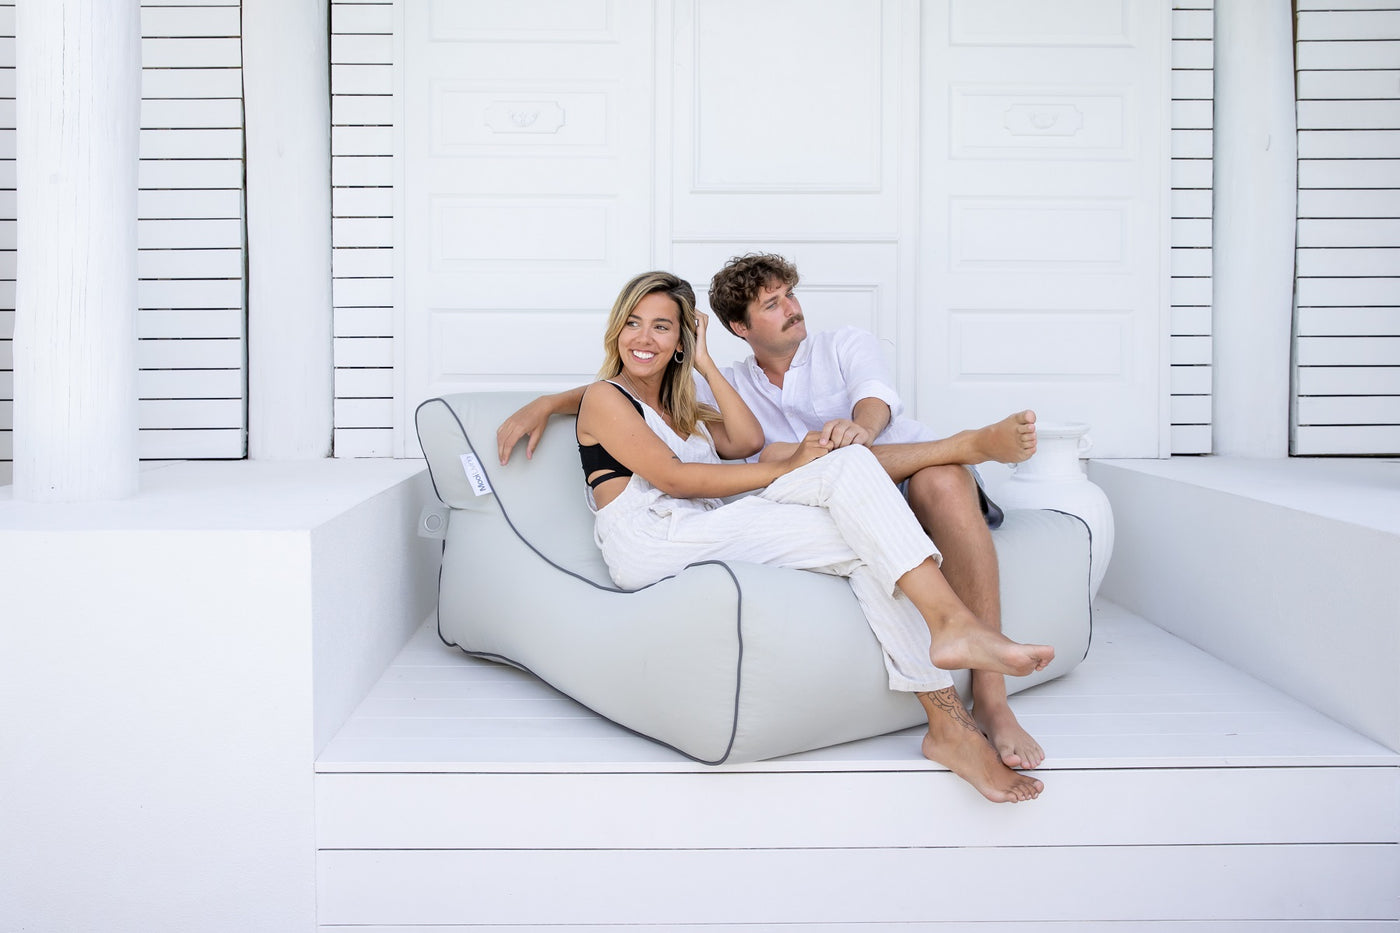 Man and Woman relaxing on a Mooi Living Outdoor Lounger Bean Bag. Shop Laguna Lifestyle for all your pool and outdoor lifestyle accessories.